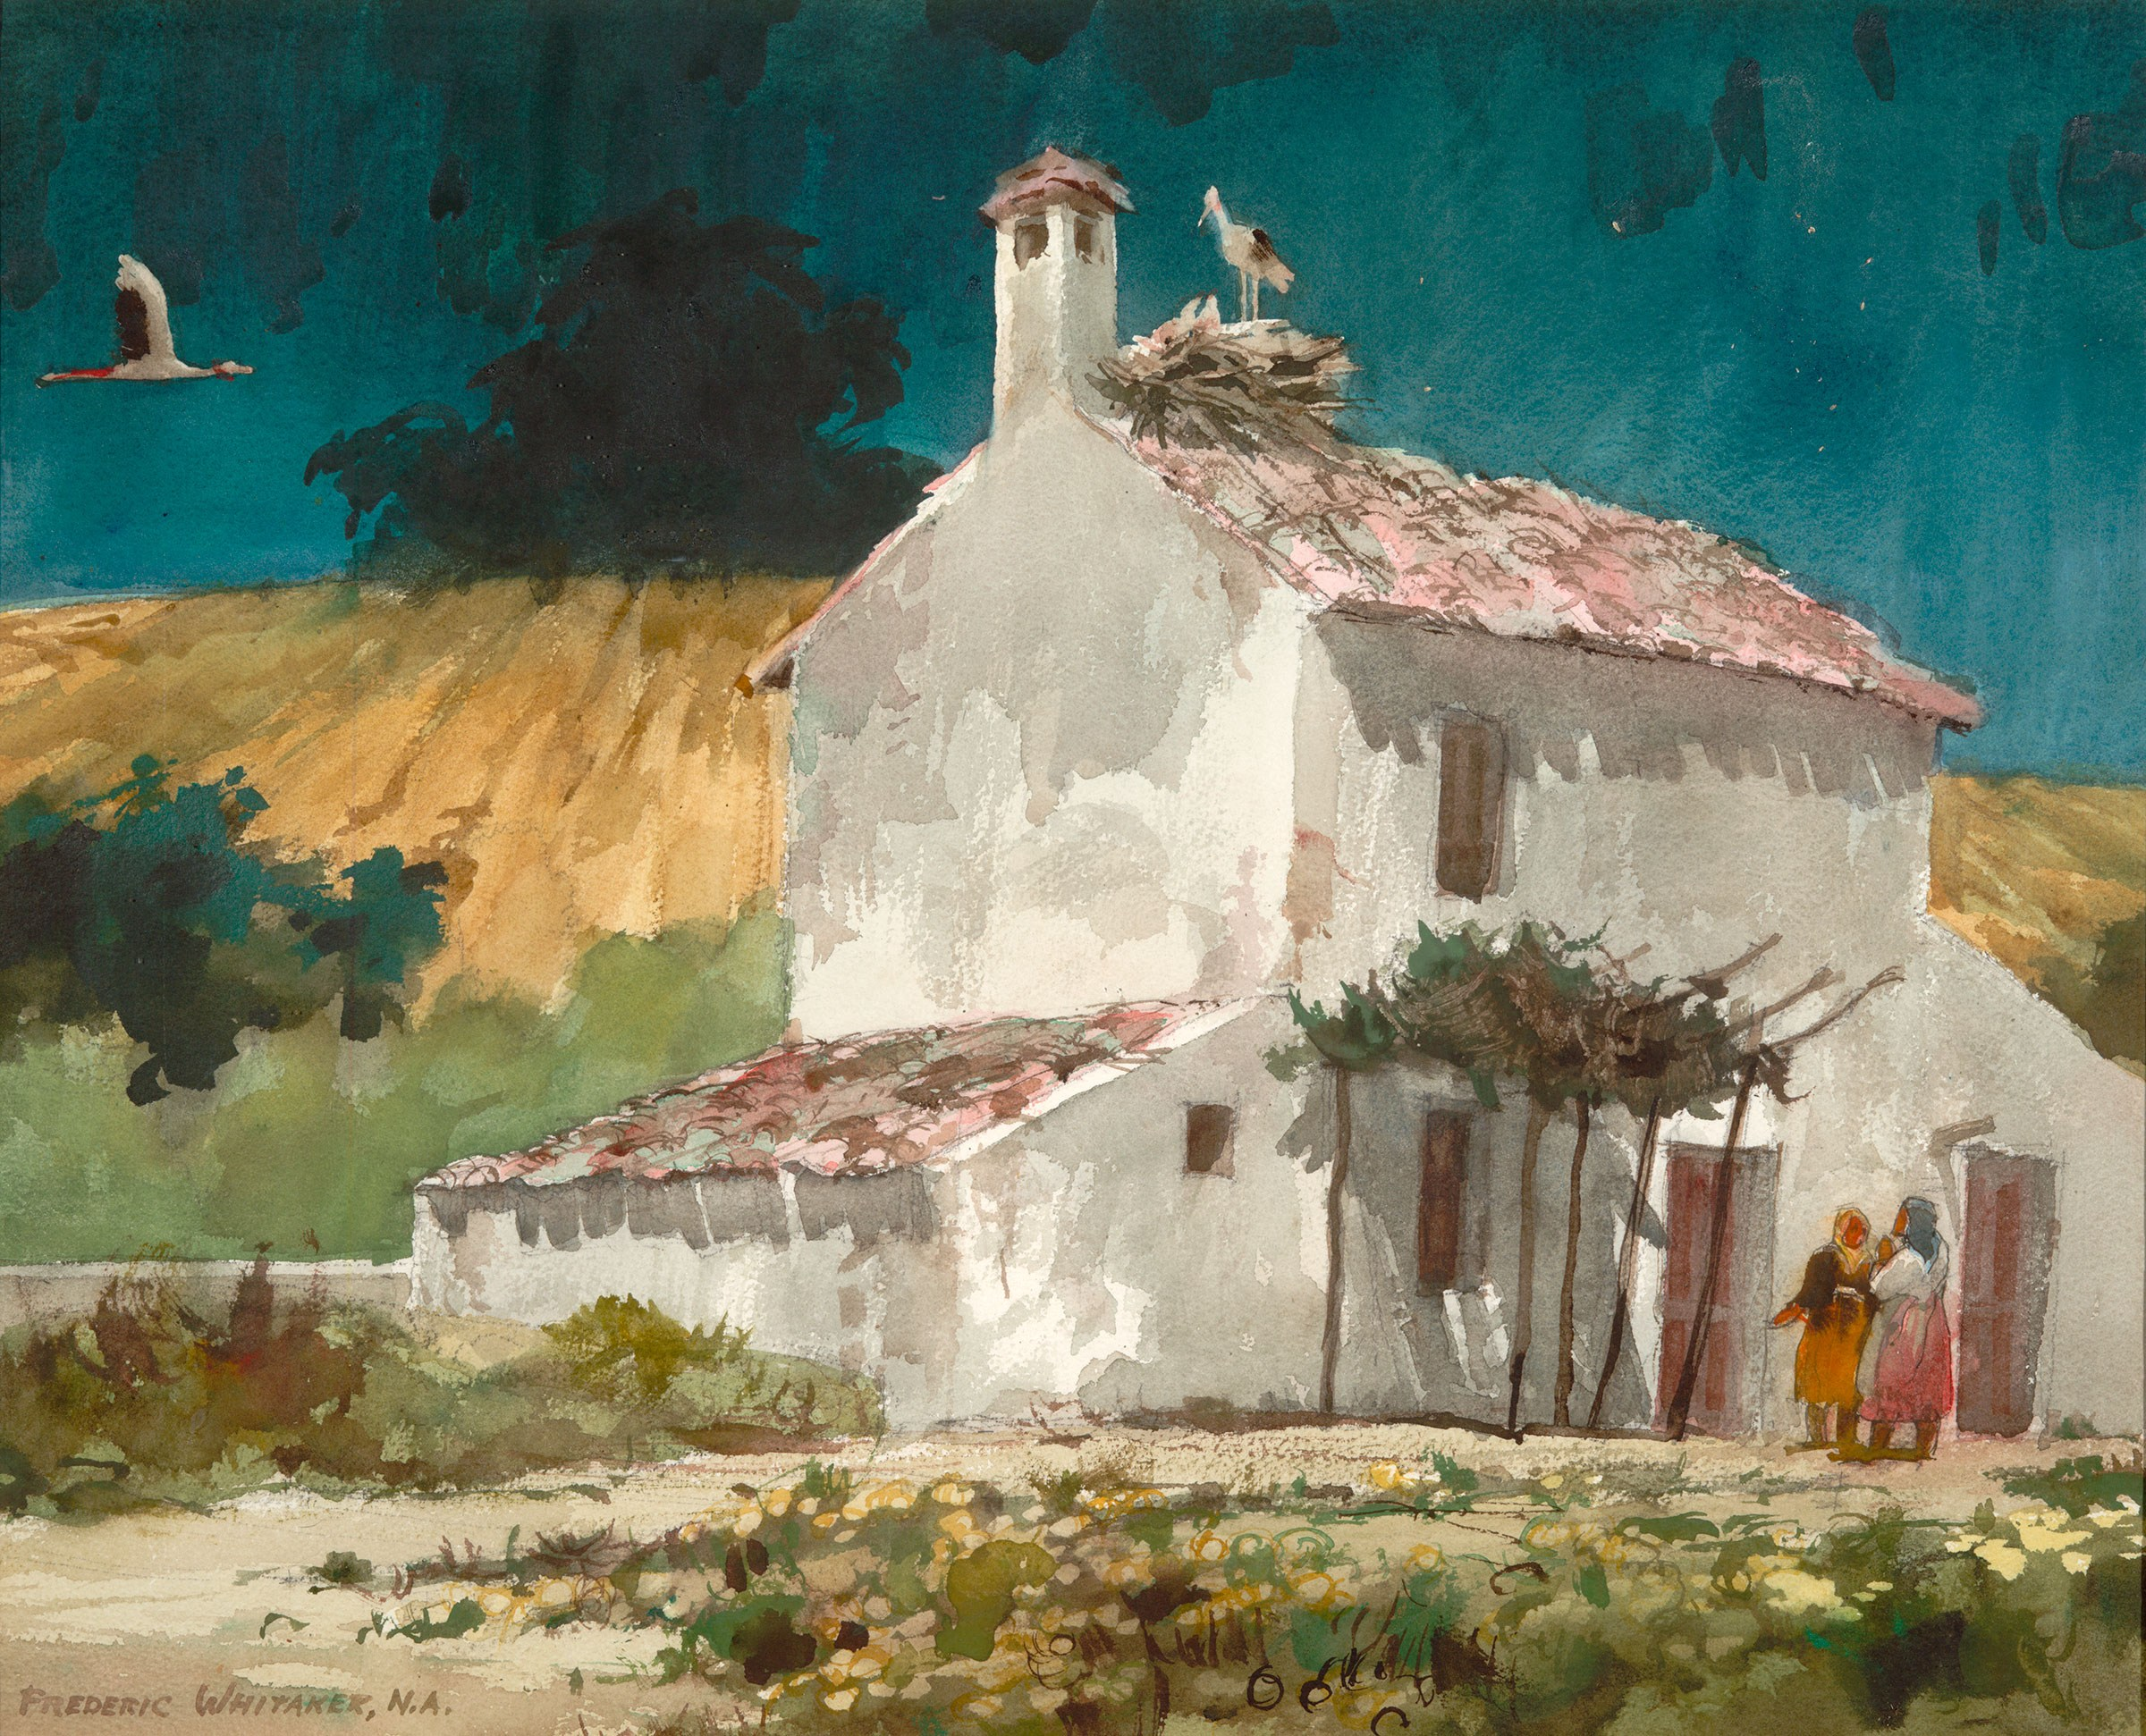 """""""Home in Andalusia"""" 1969 © Frederic Whitaker N.A.  22x27.5 inches Watercolor"""